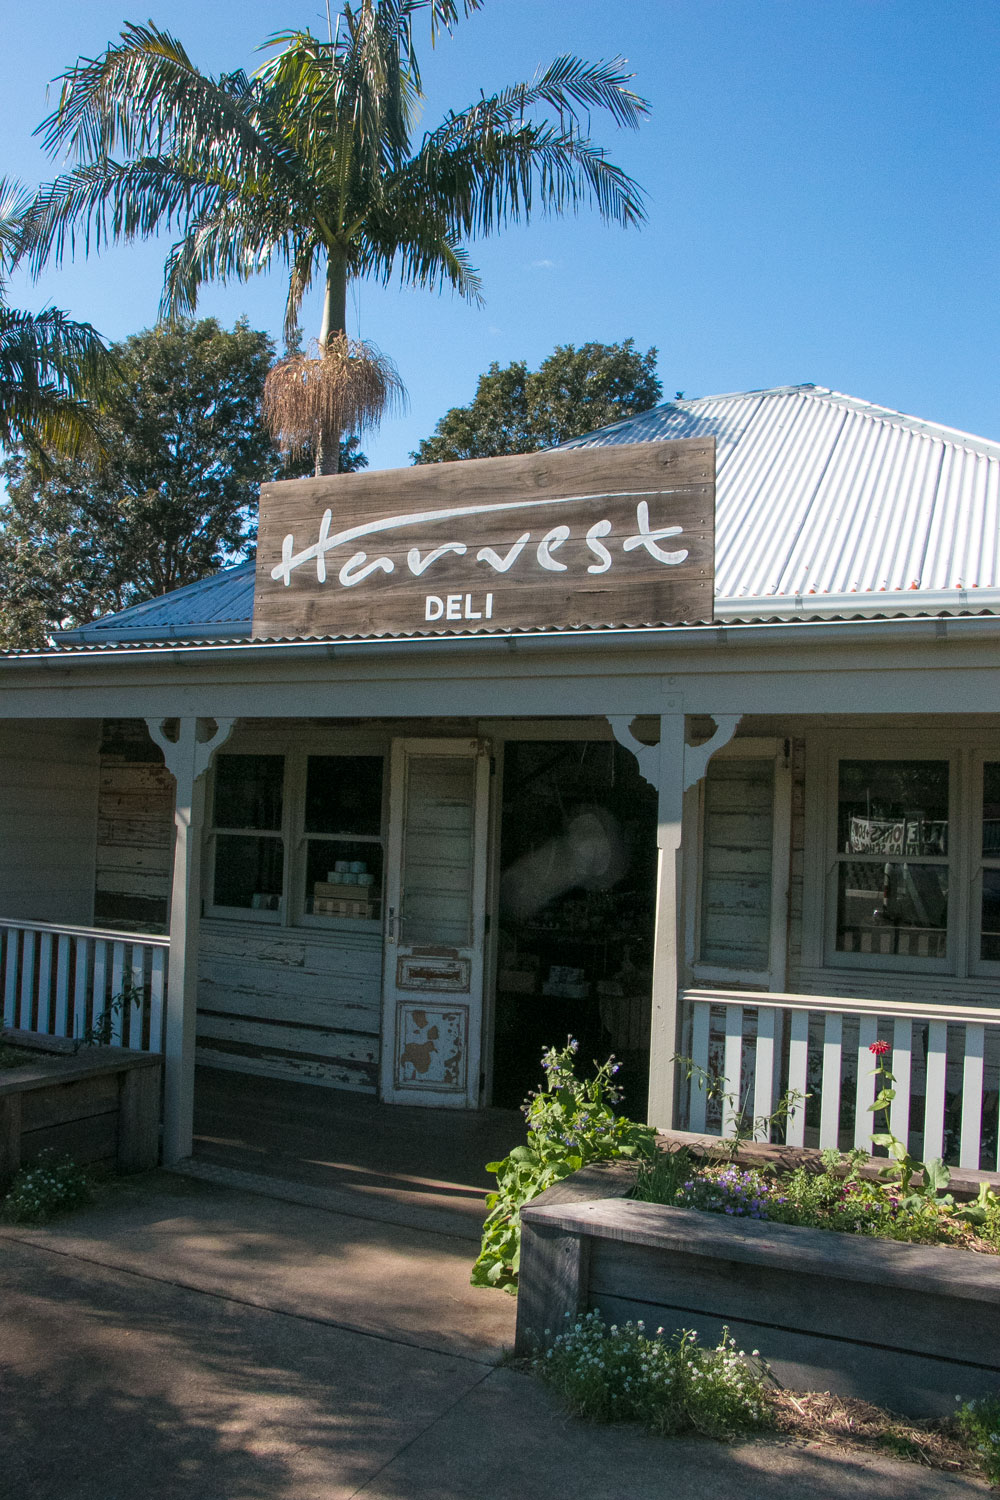 Harvest-Deli-Byron-Bay-Travel-Guide